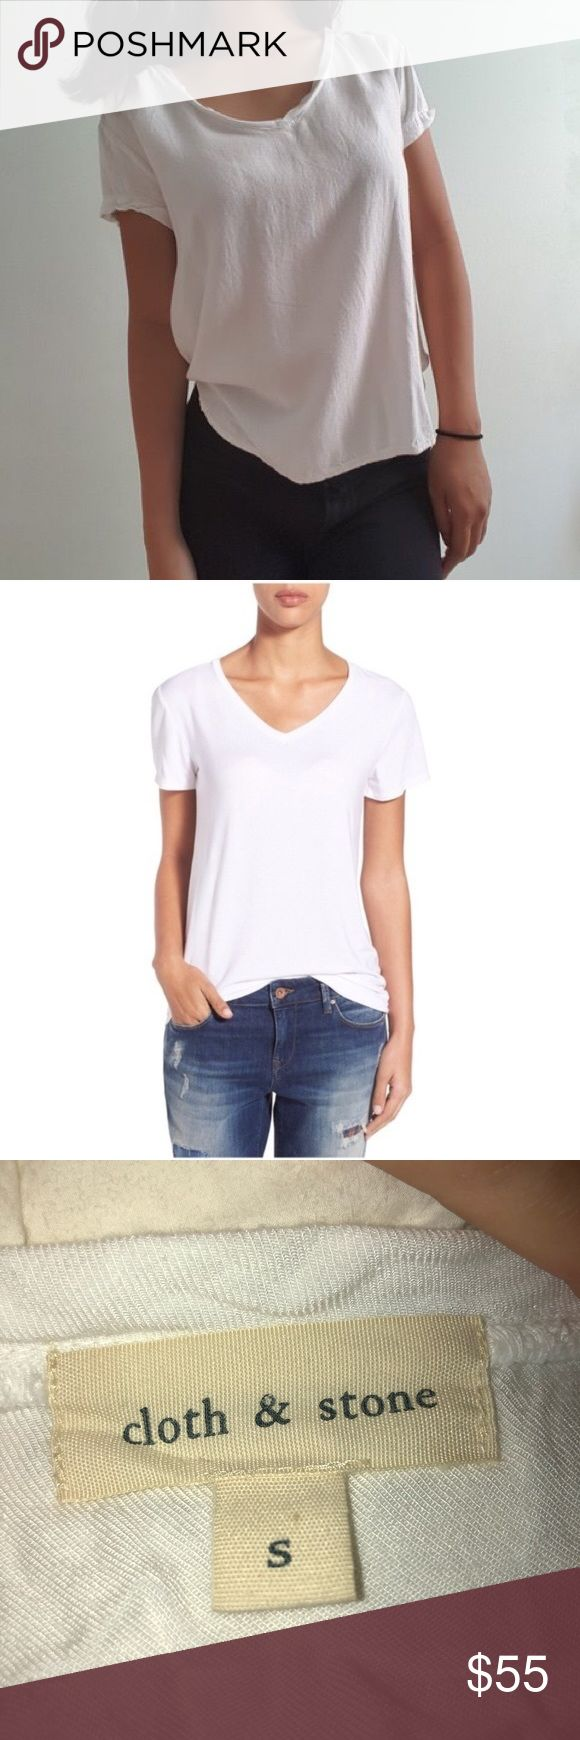 Cloth & Stone white Vneck shirt from Anthropologie CLOTH & STONE relaxed white v…